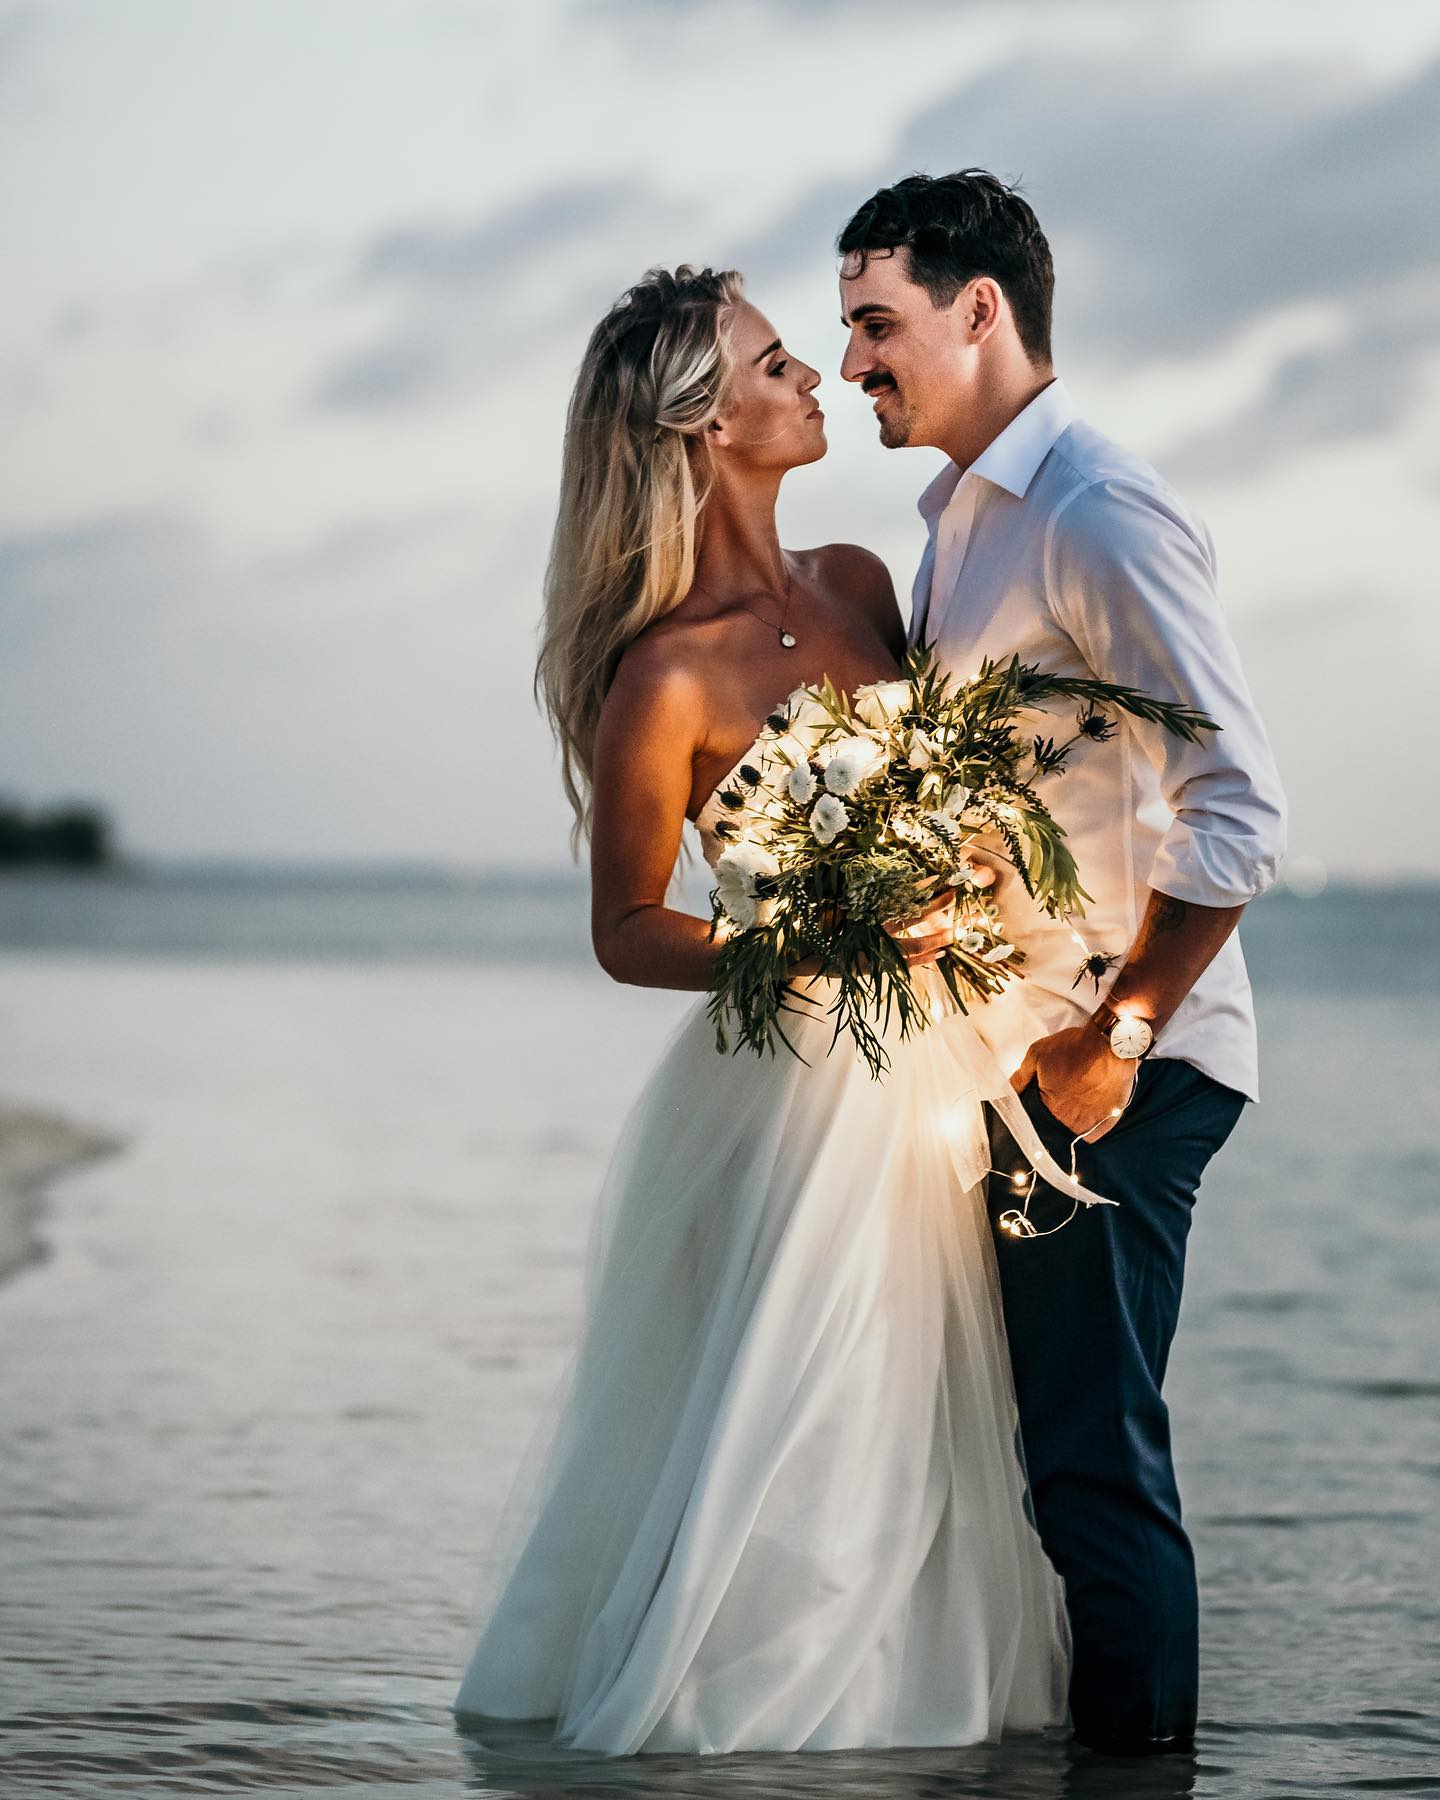 12 Photos To Inspire Your Beach Destination Wedding in the Caribbean & Mexico, Photography by Jenna Leigh Photography